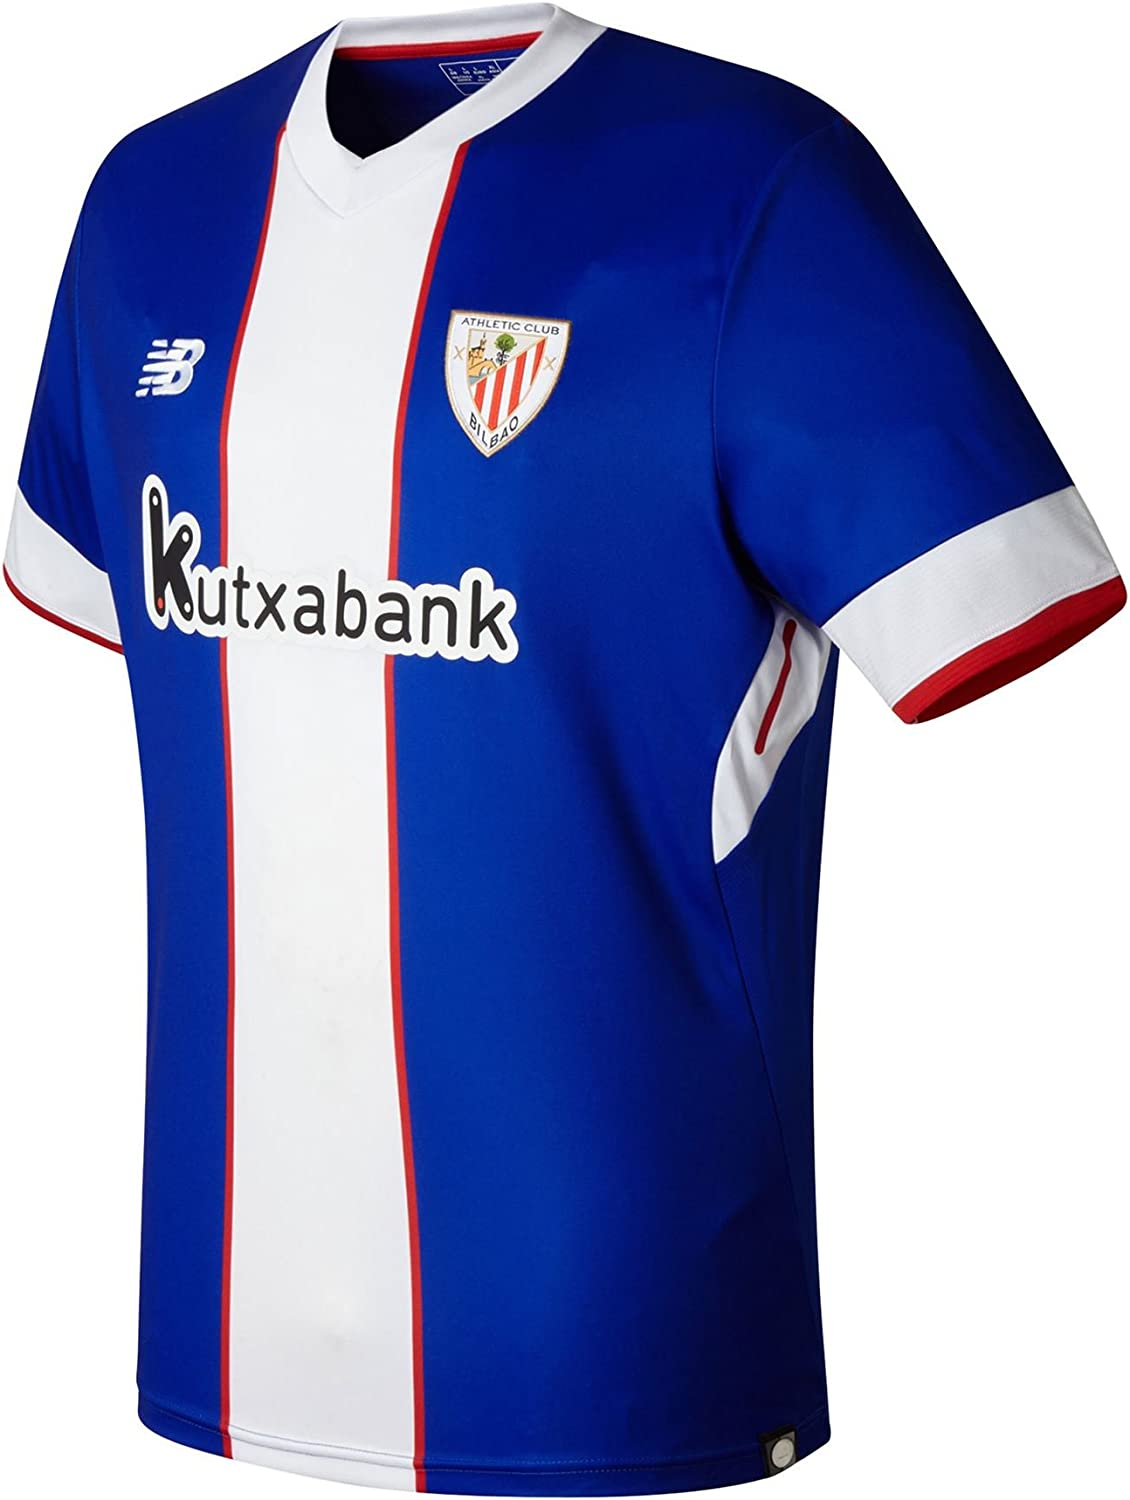 Camiseta AC Bilbao MC 3ª 2017-2018 Azul-Blanco Talla S: Amazon.es ...